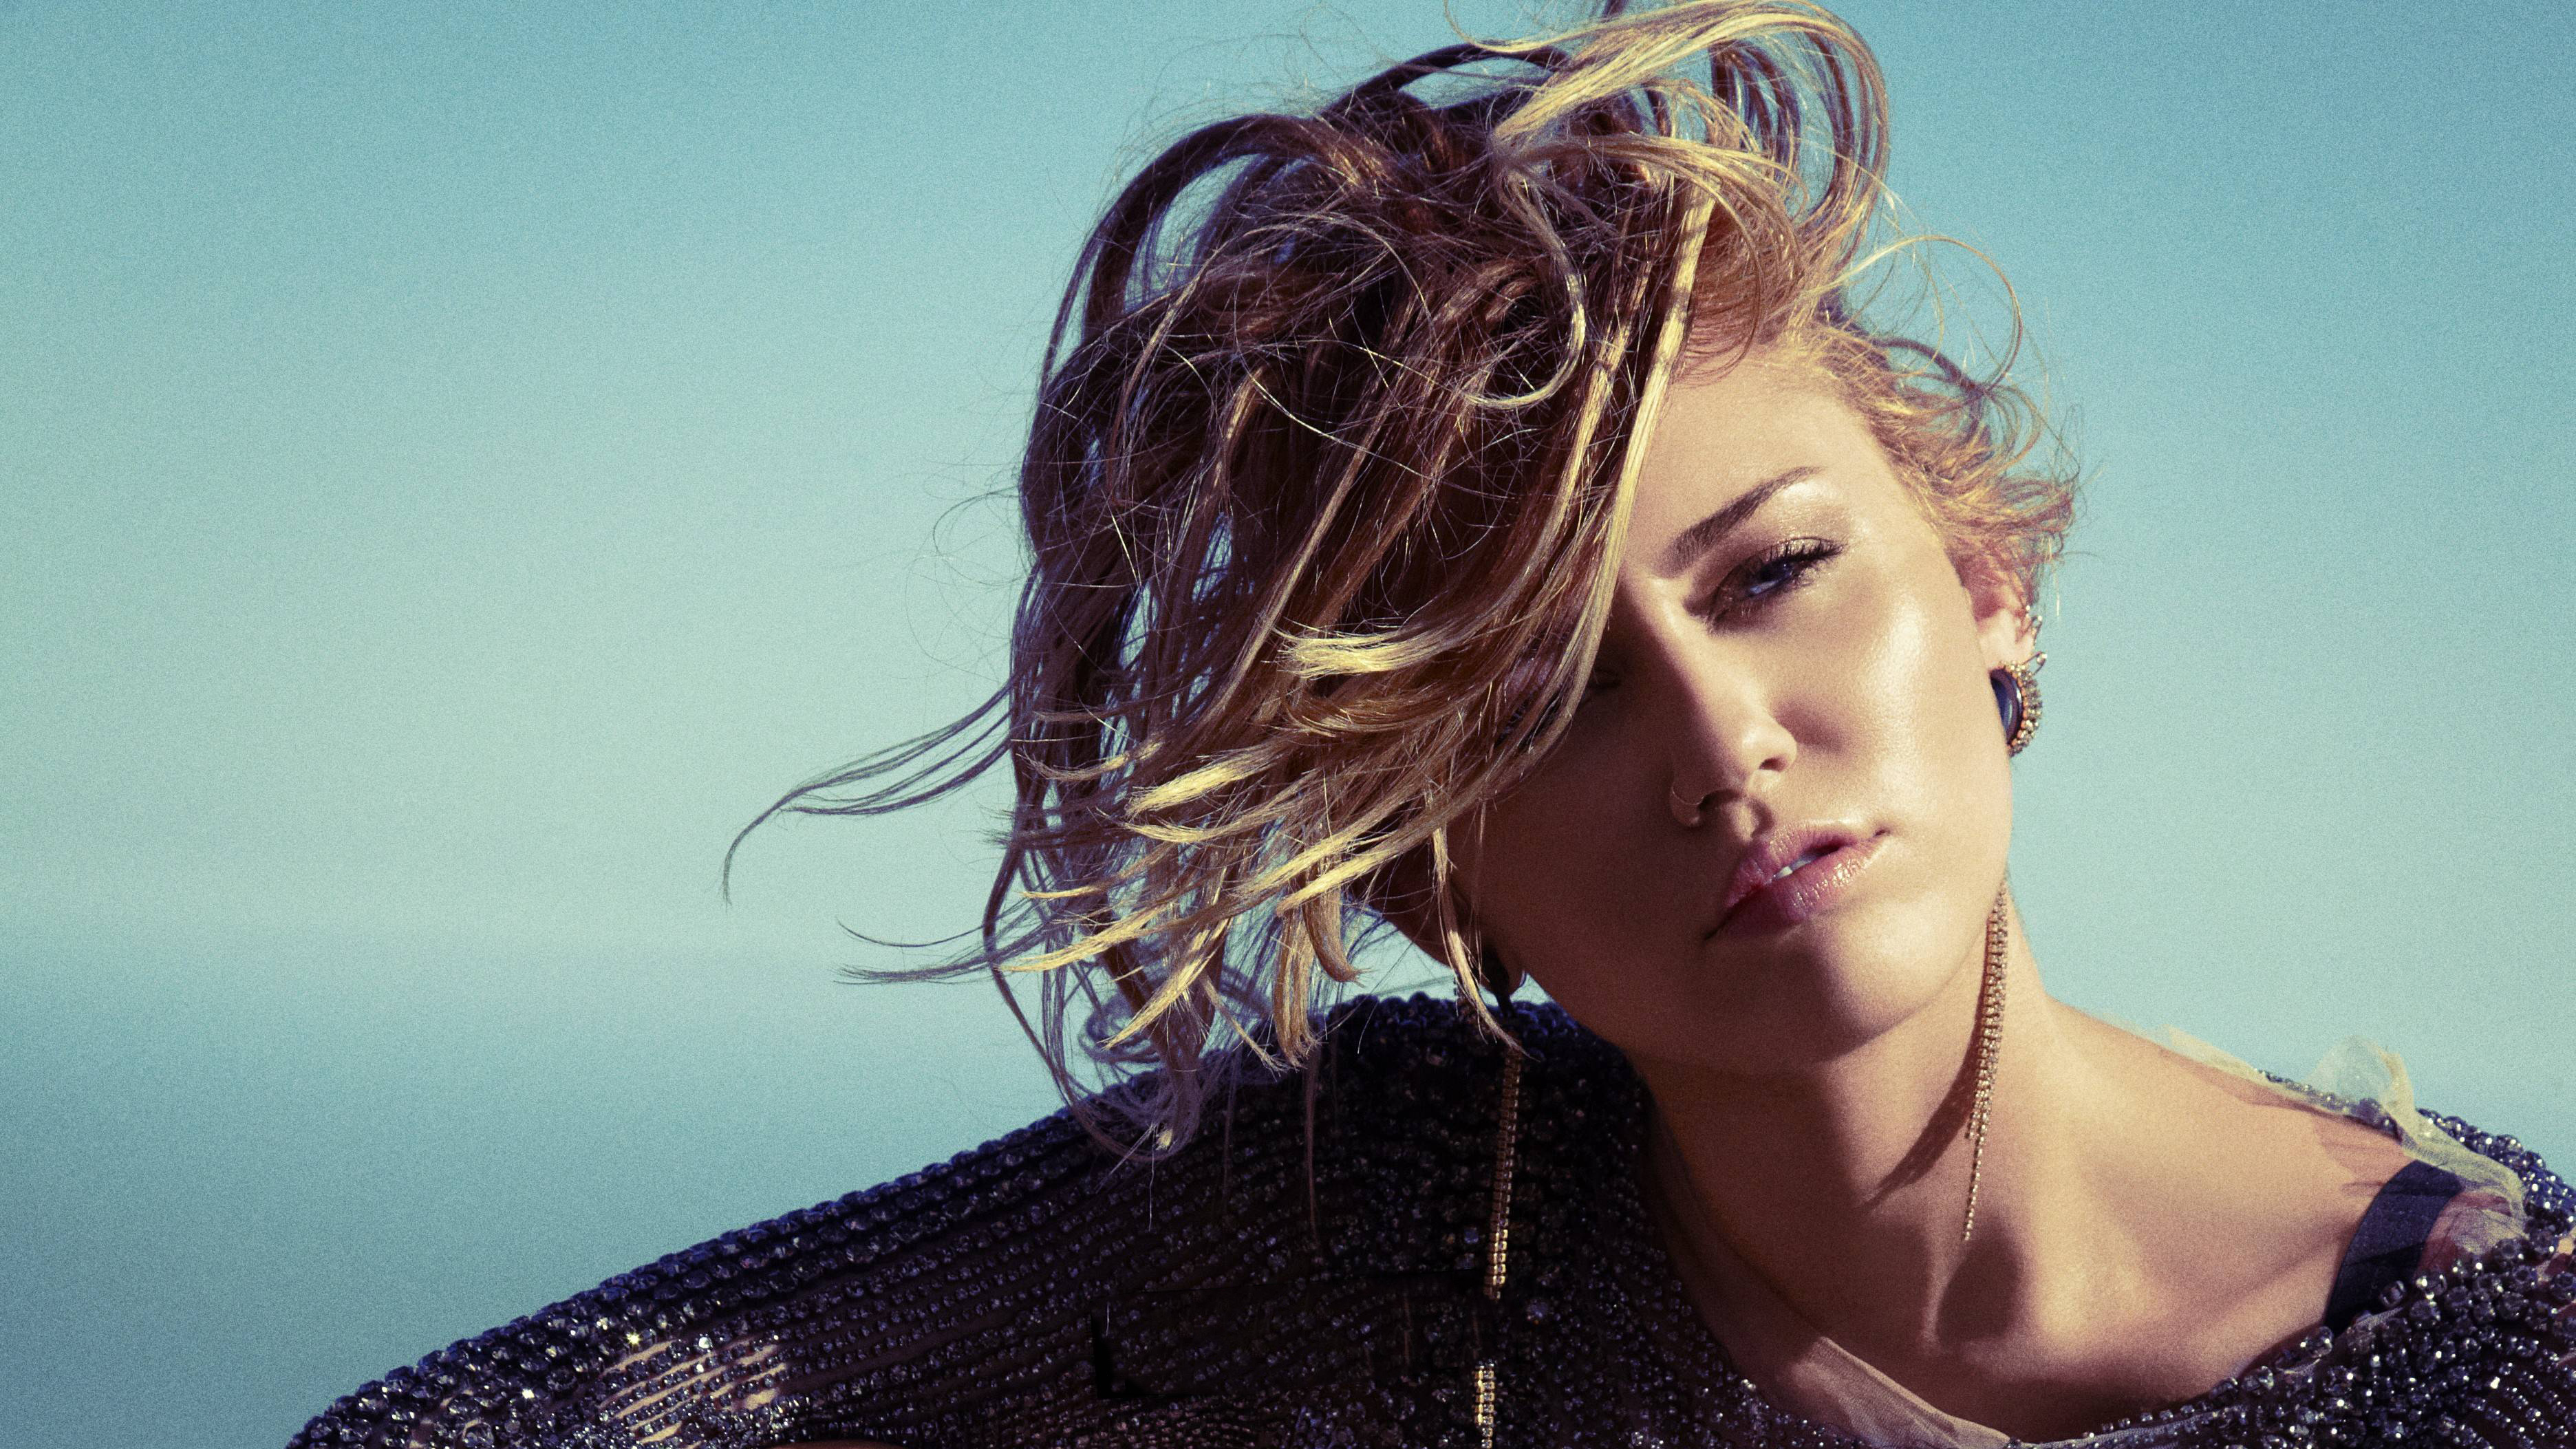 4k Miley Cyrus 2018 Hd Music 4k Wallpapers Images